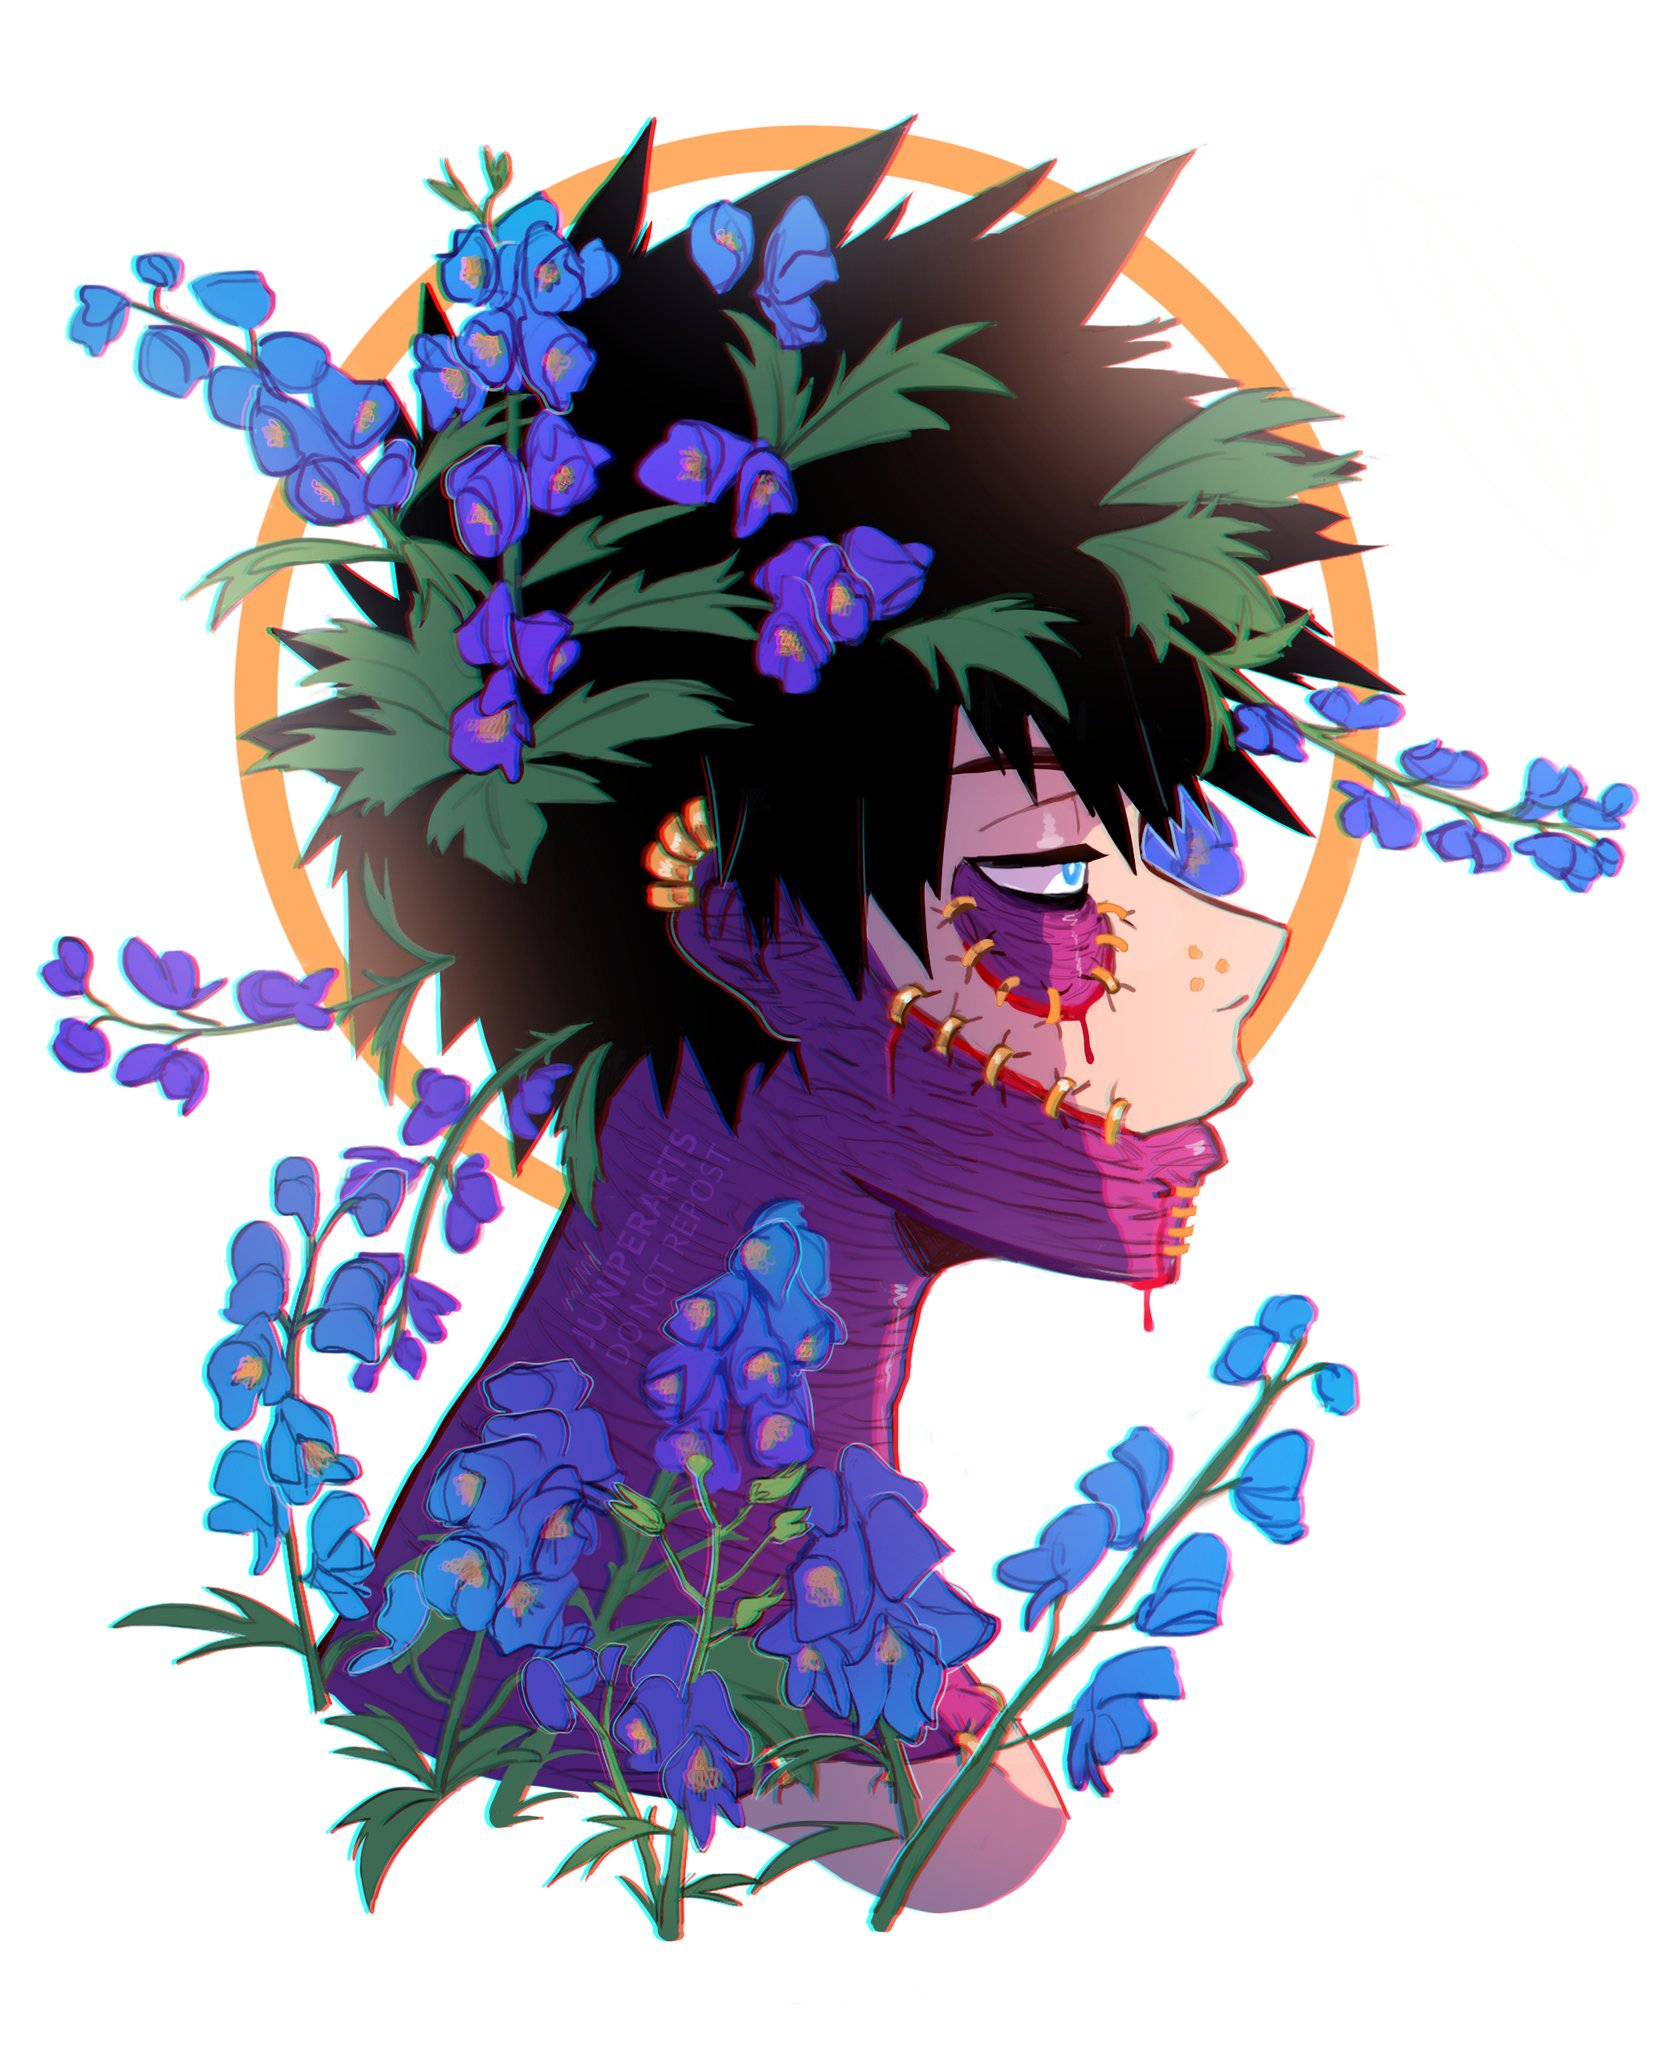 Dabi Fleurs Boku No Hero Academia Fan Art 43281955 Fanpop Page 71